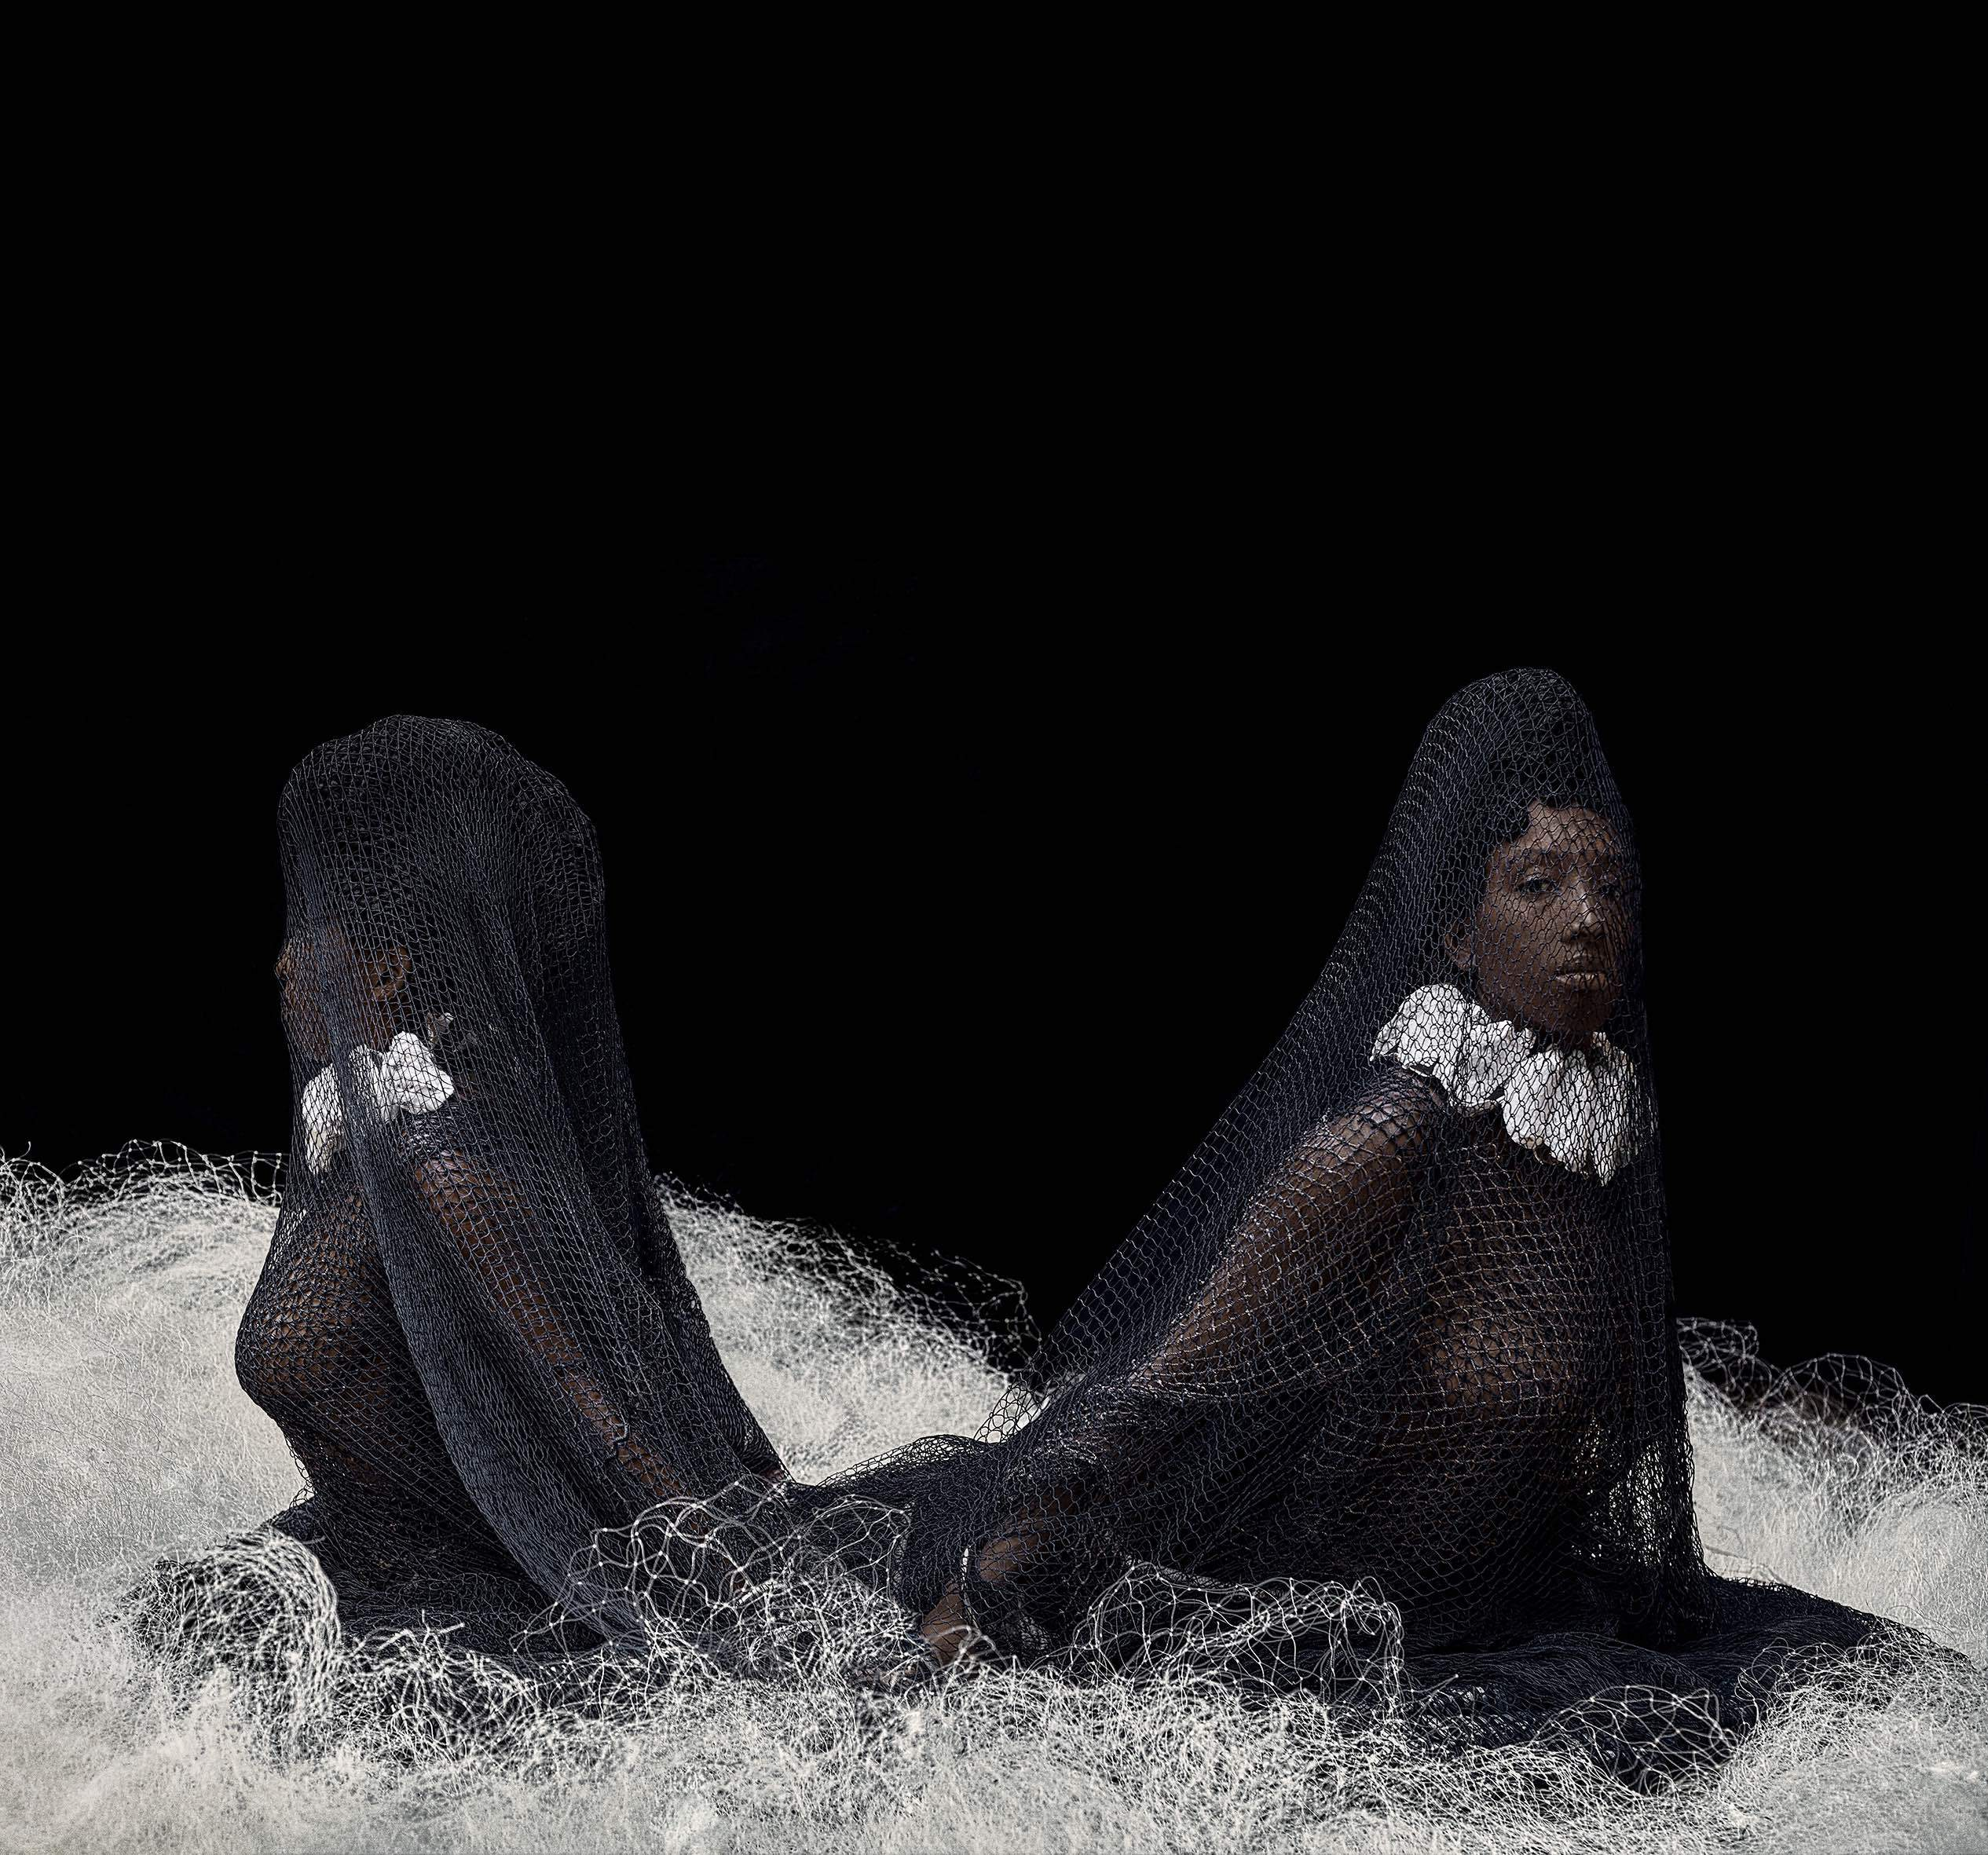 Ayana V. Jackson, Double Goddess ... A Sighting in the Abyss, 2019 © Courtesy Mariane Ibrahim Gallery